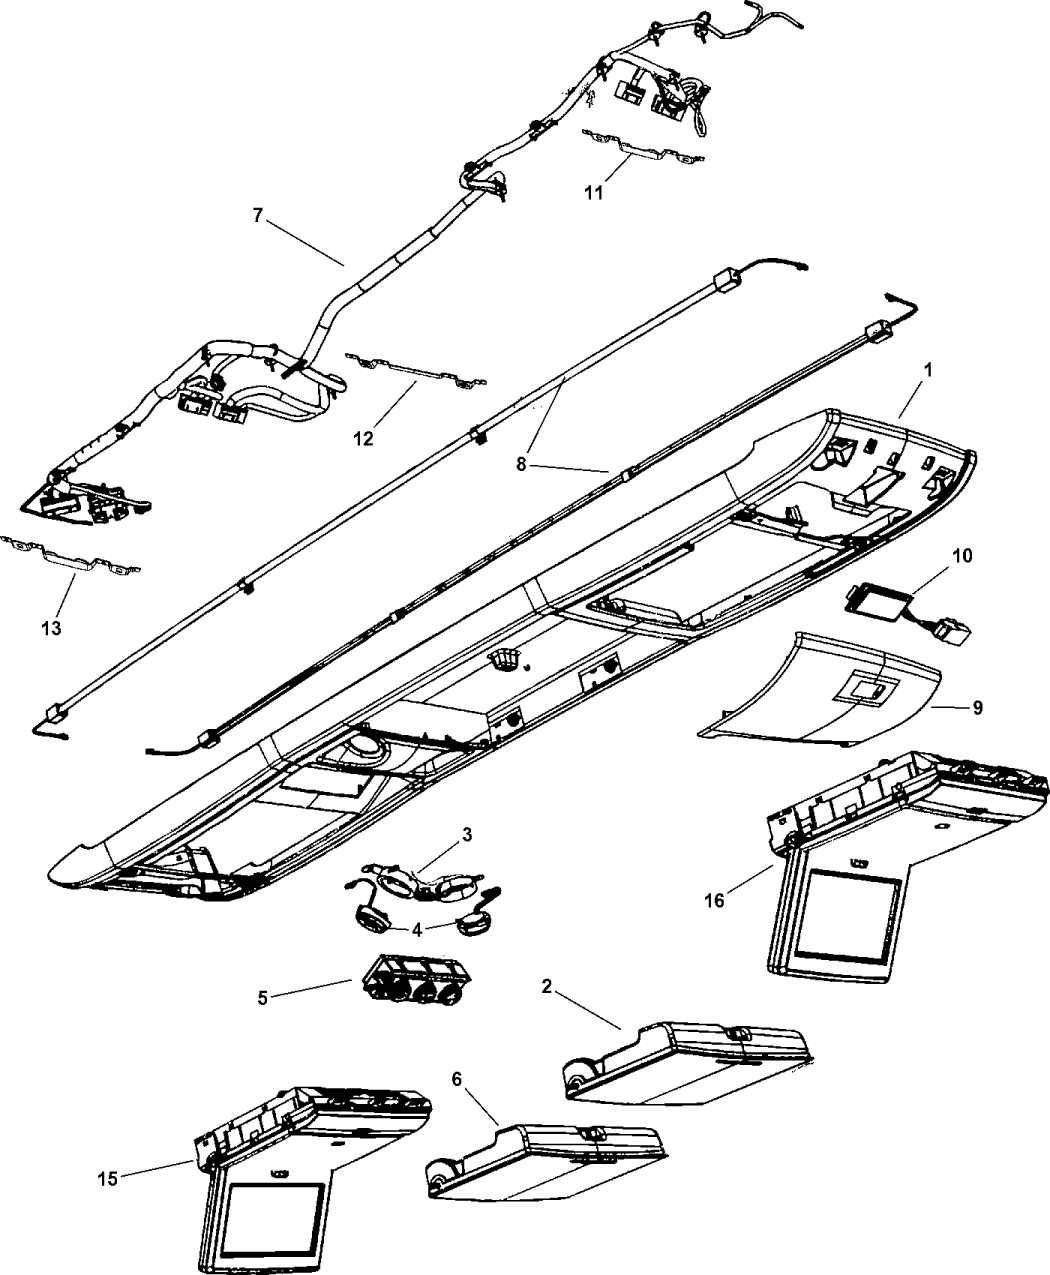 [DIAGRAM] 2008 Chrysler Town And Country Touring Wiring